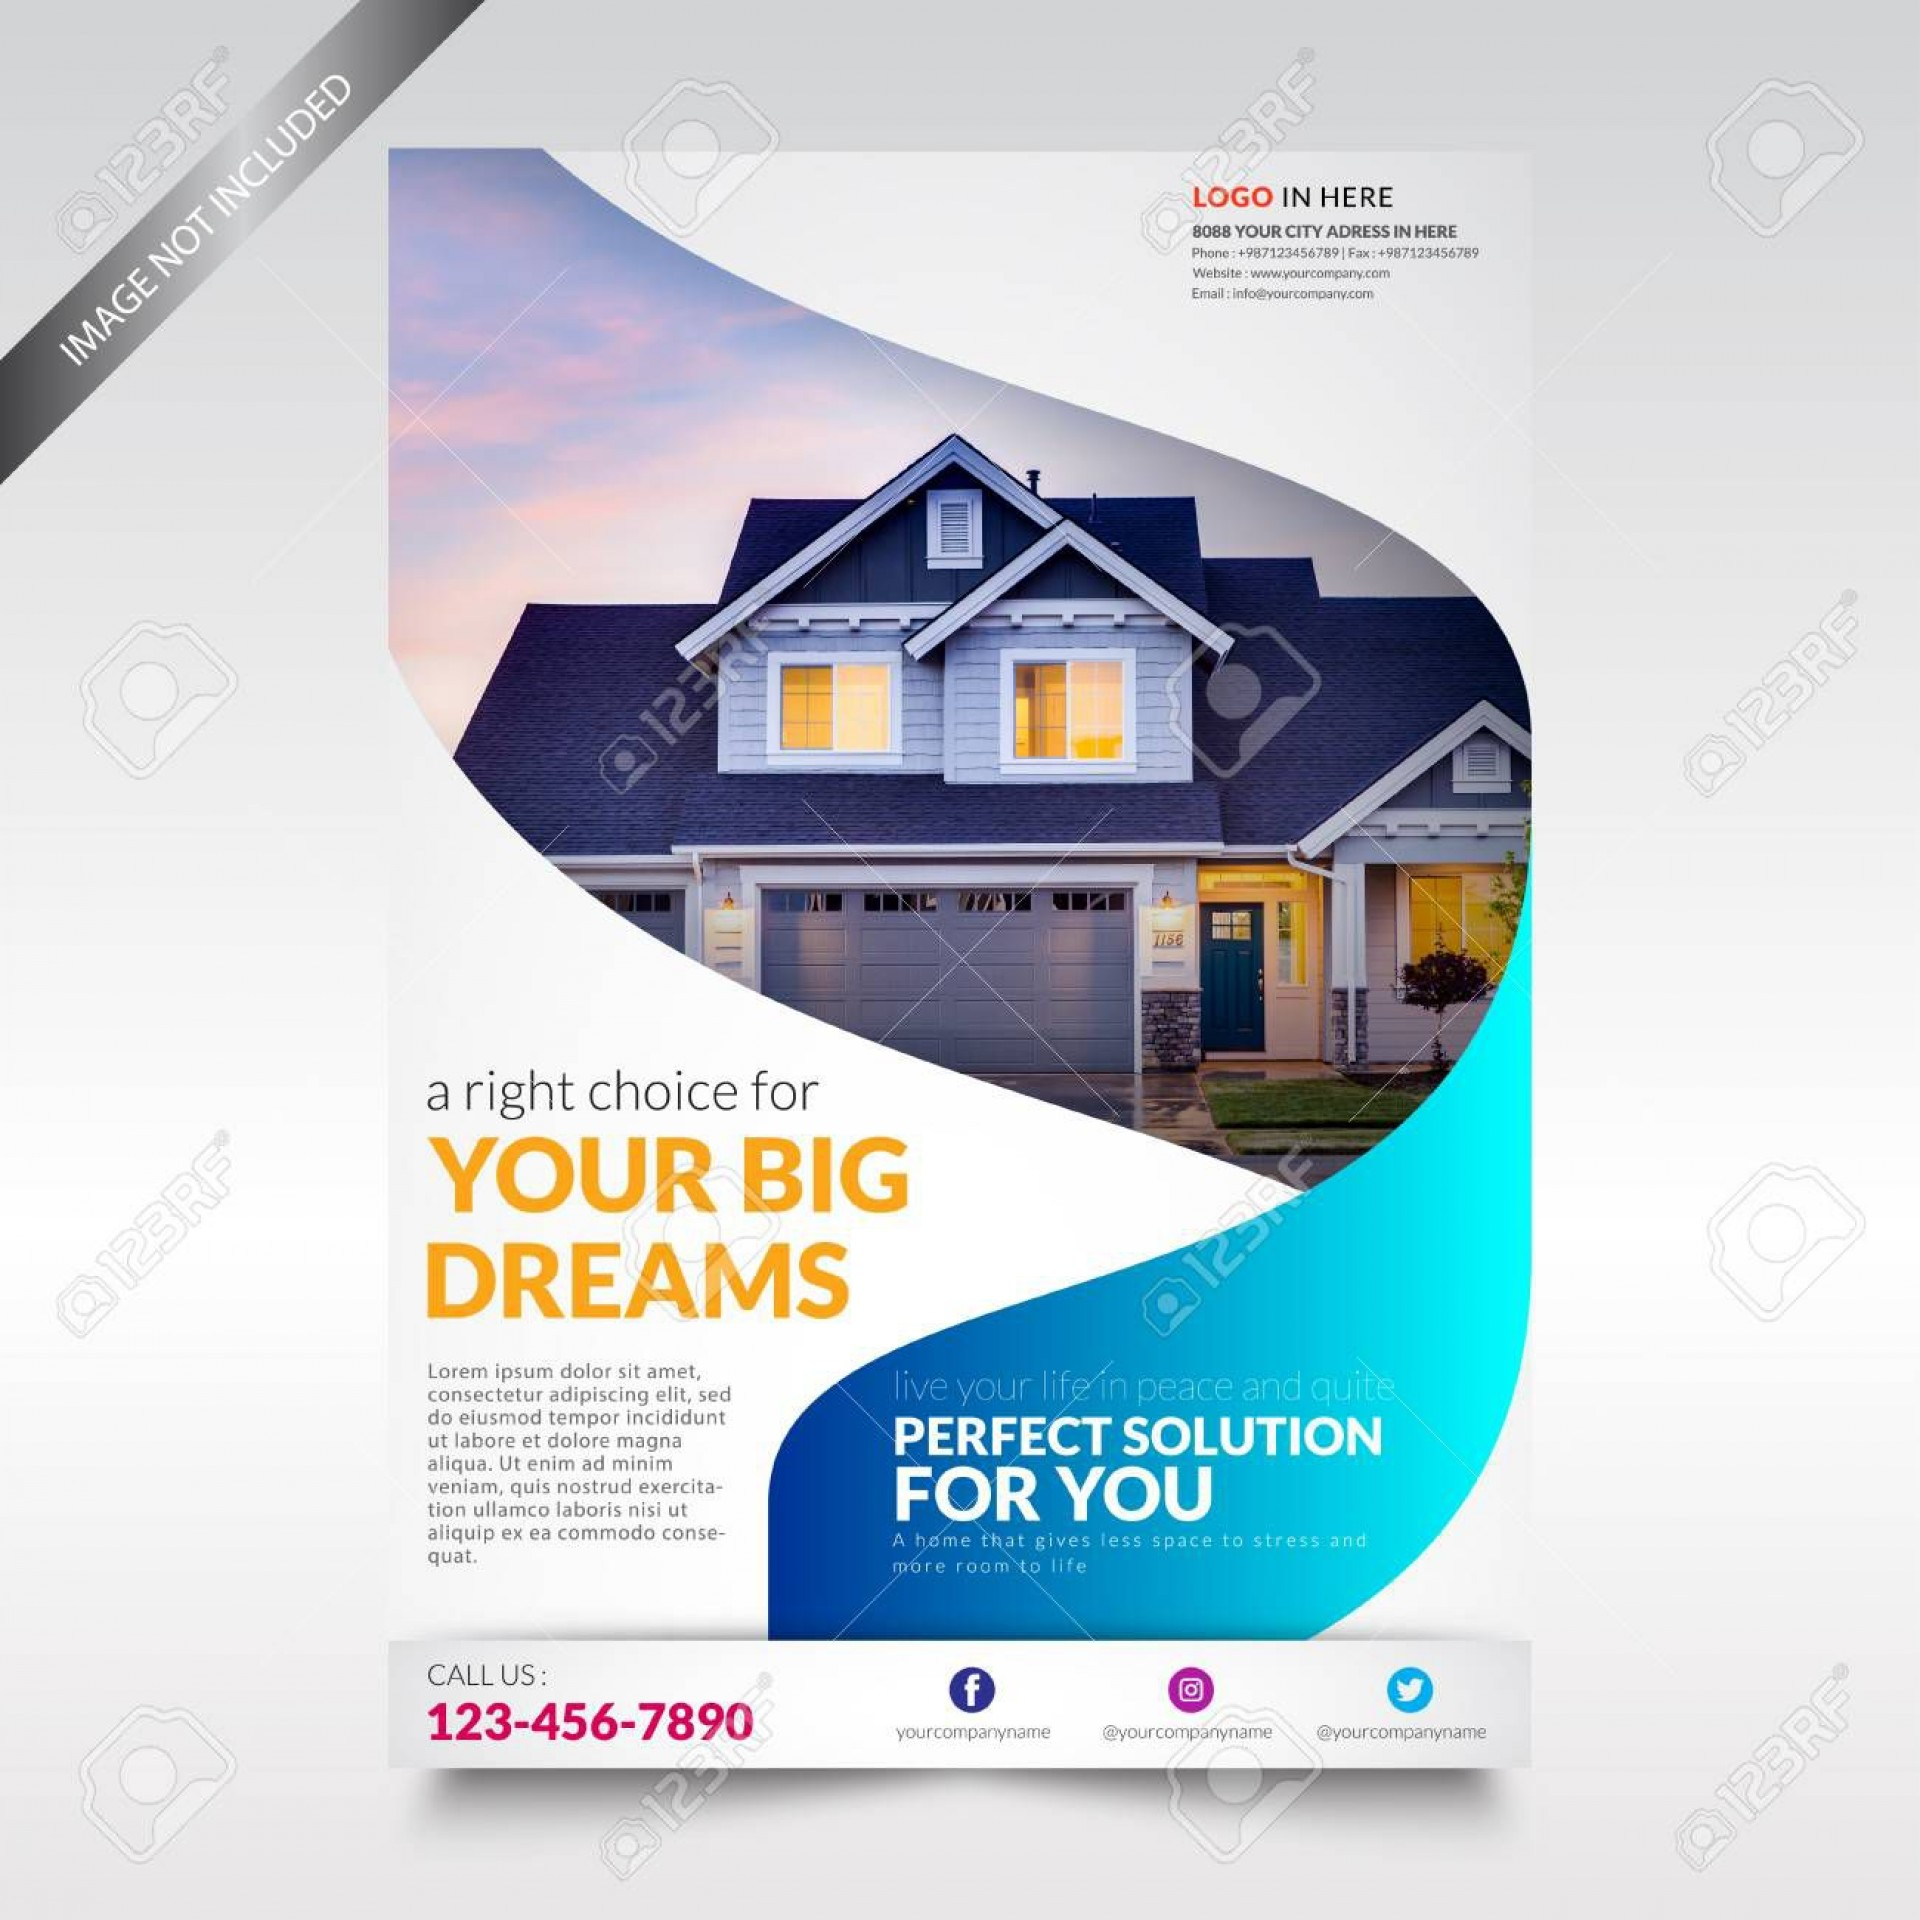 000 Sensational Real Estate Flyer Template Photo  Publisher Word Free1920